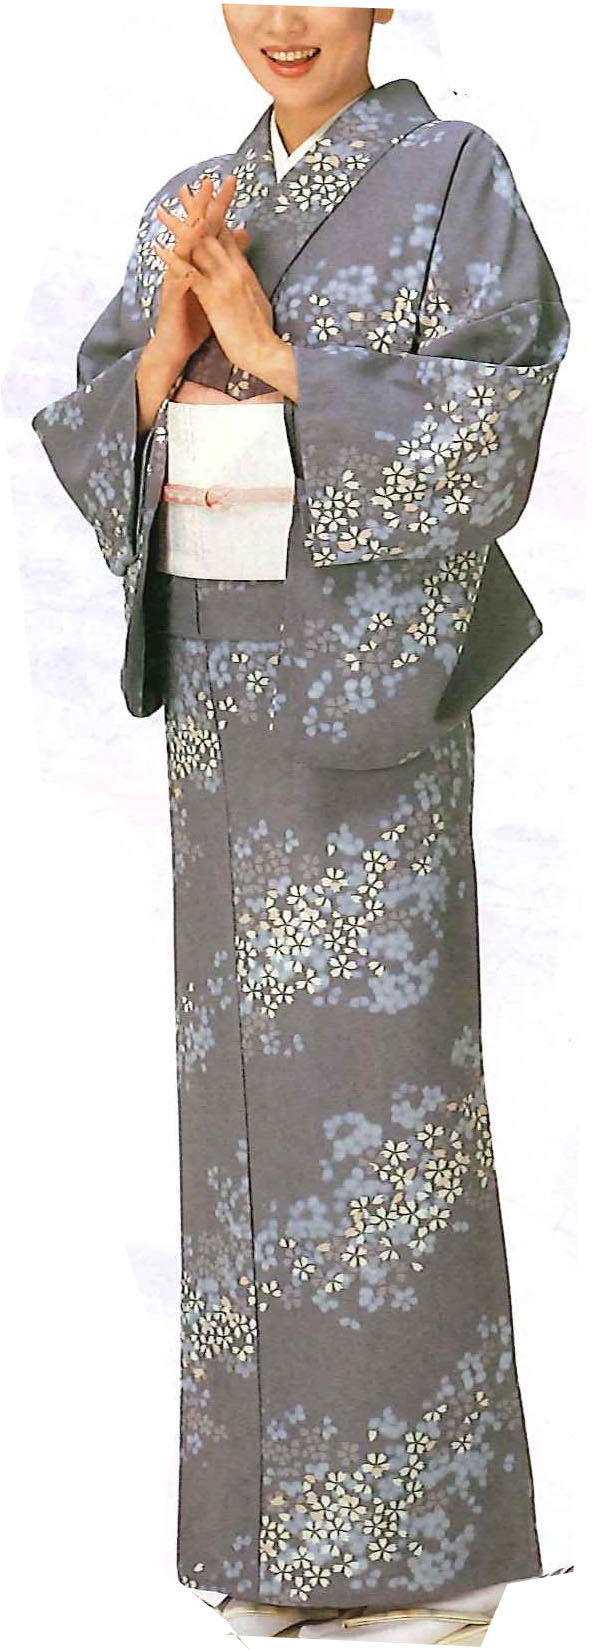 Custom Made Kimono | Komon Cherry blossom |FOR LADY